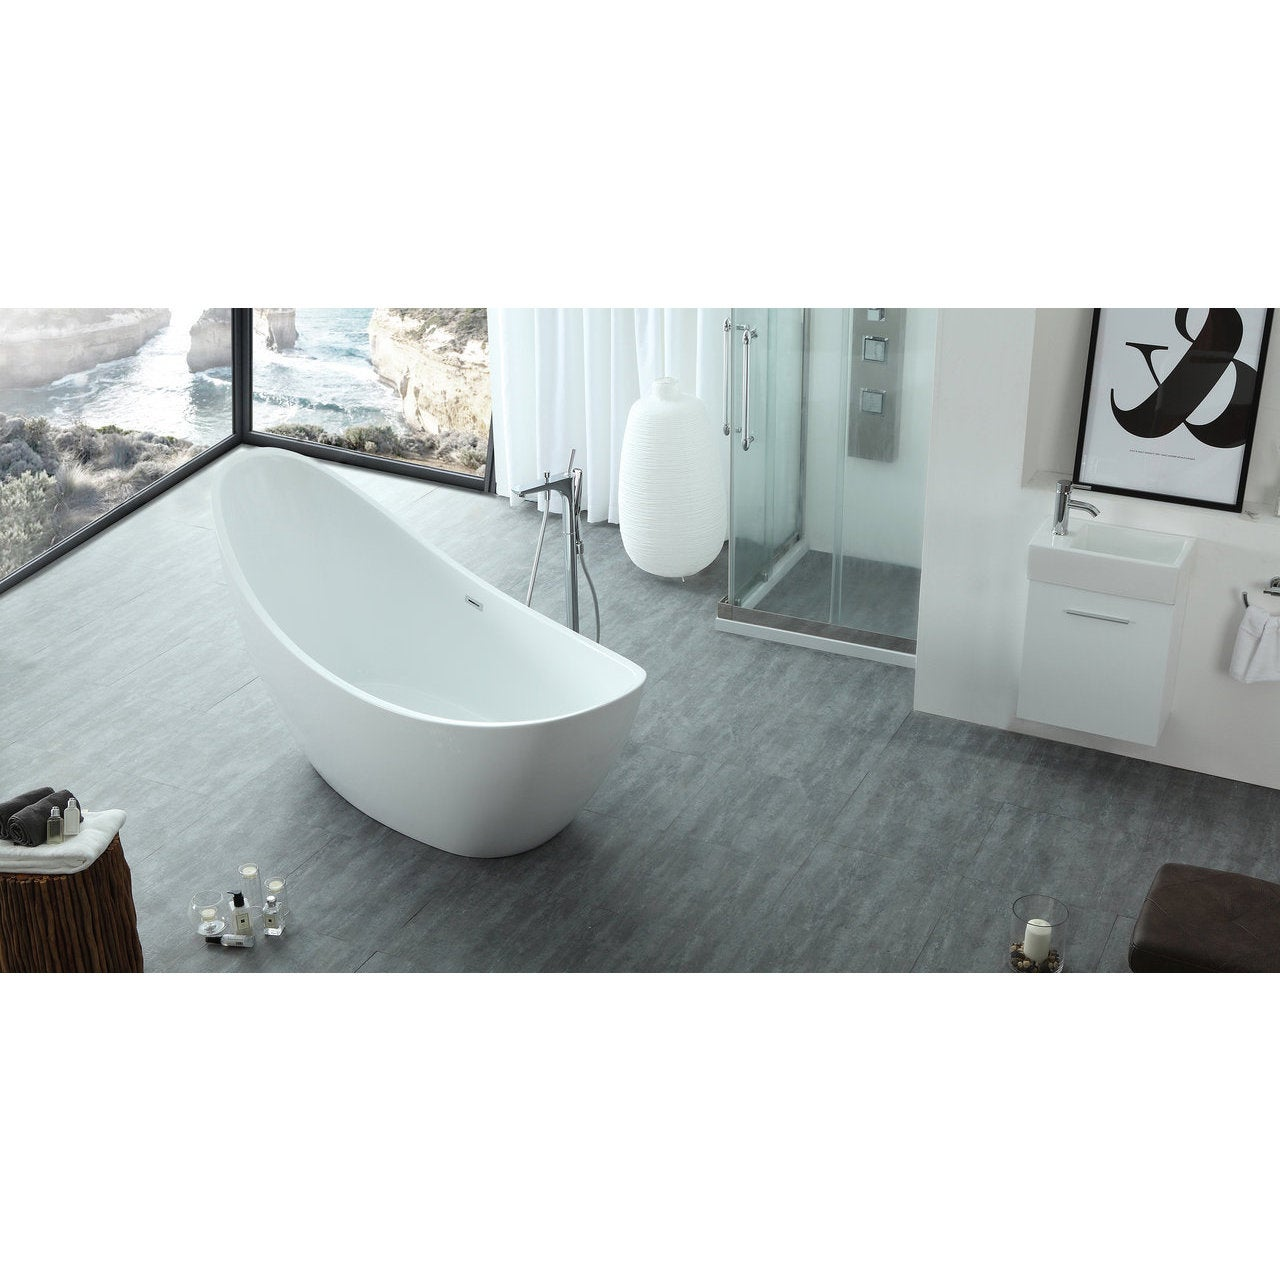 HelixBath Odysseus White Freestanding Swooping Slipper Bathtub with ...